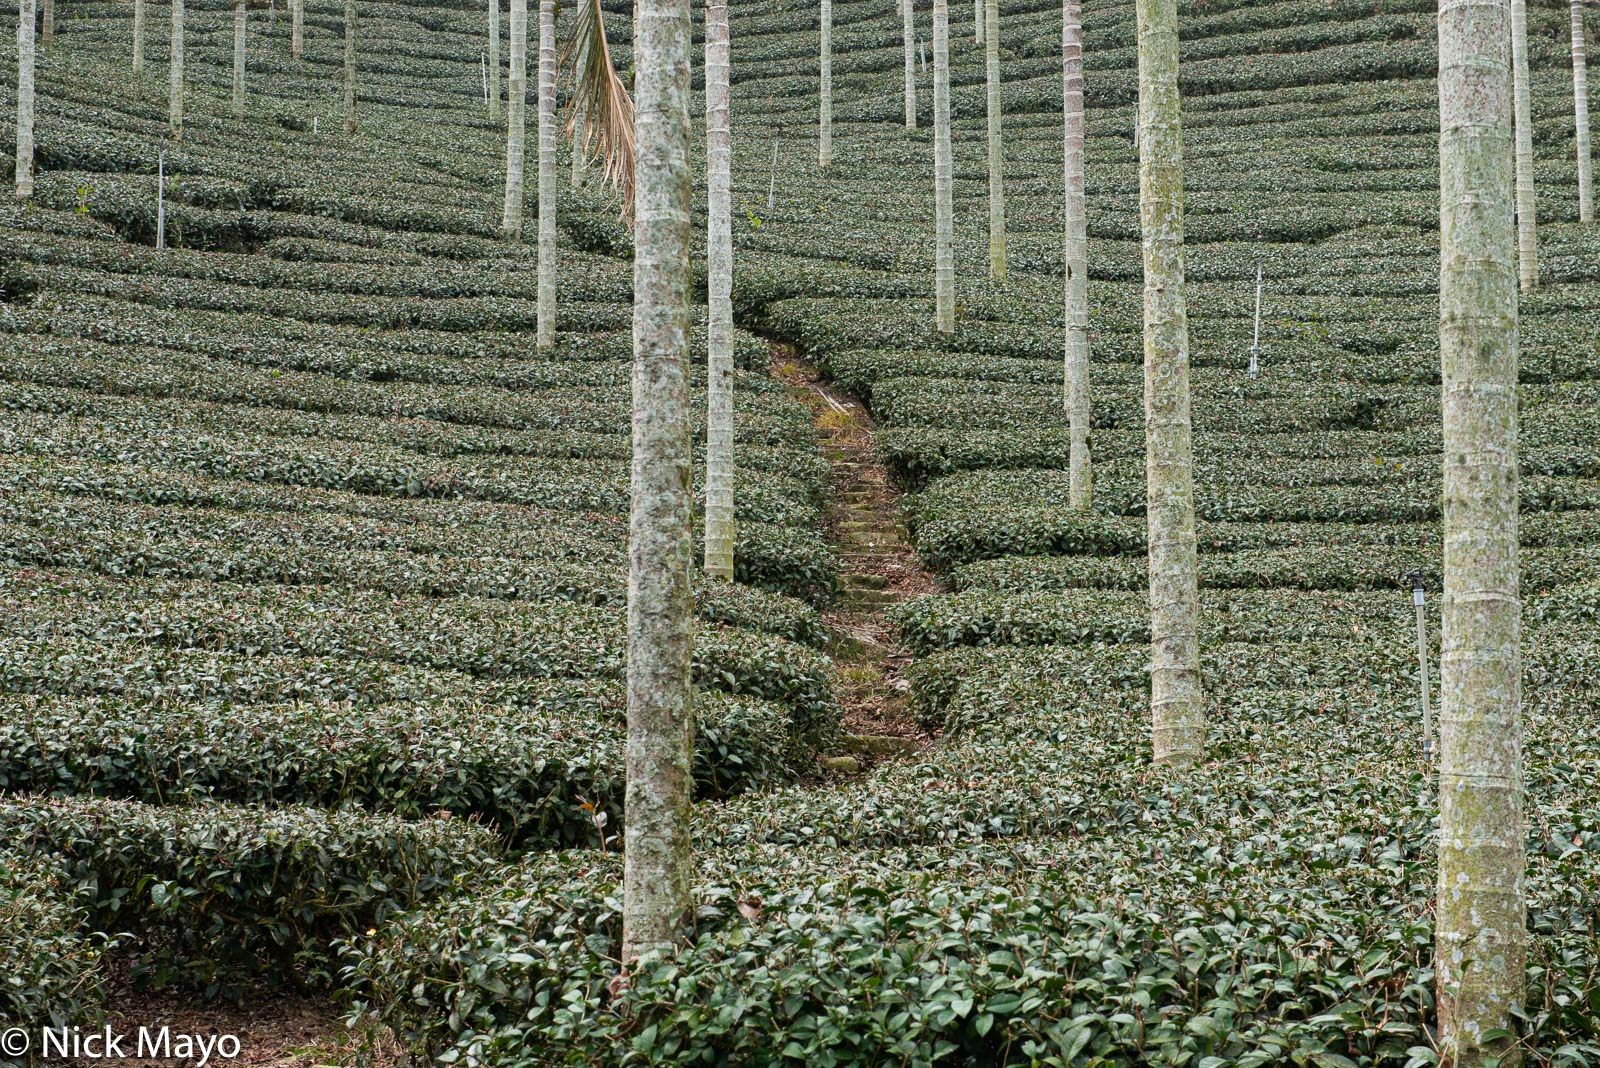 A path through a field of tea and betel trees at Liyuanliao in Chiayi County.